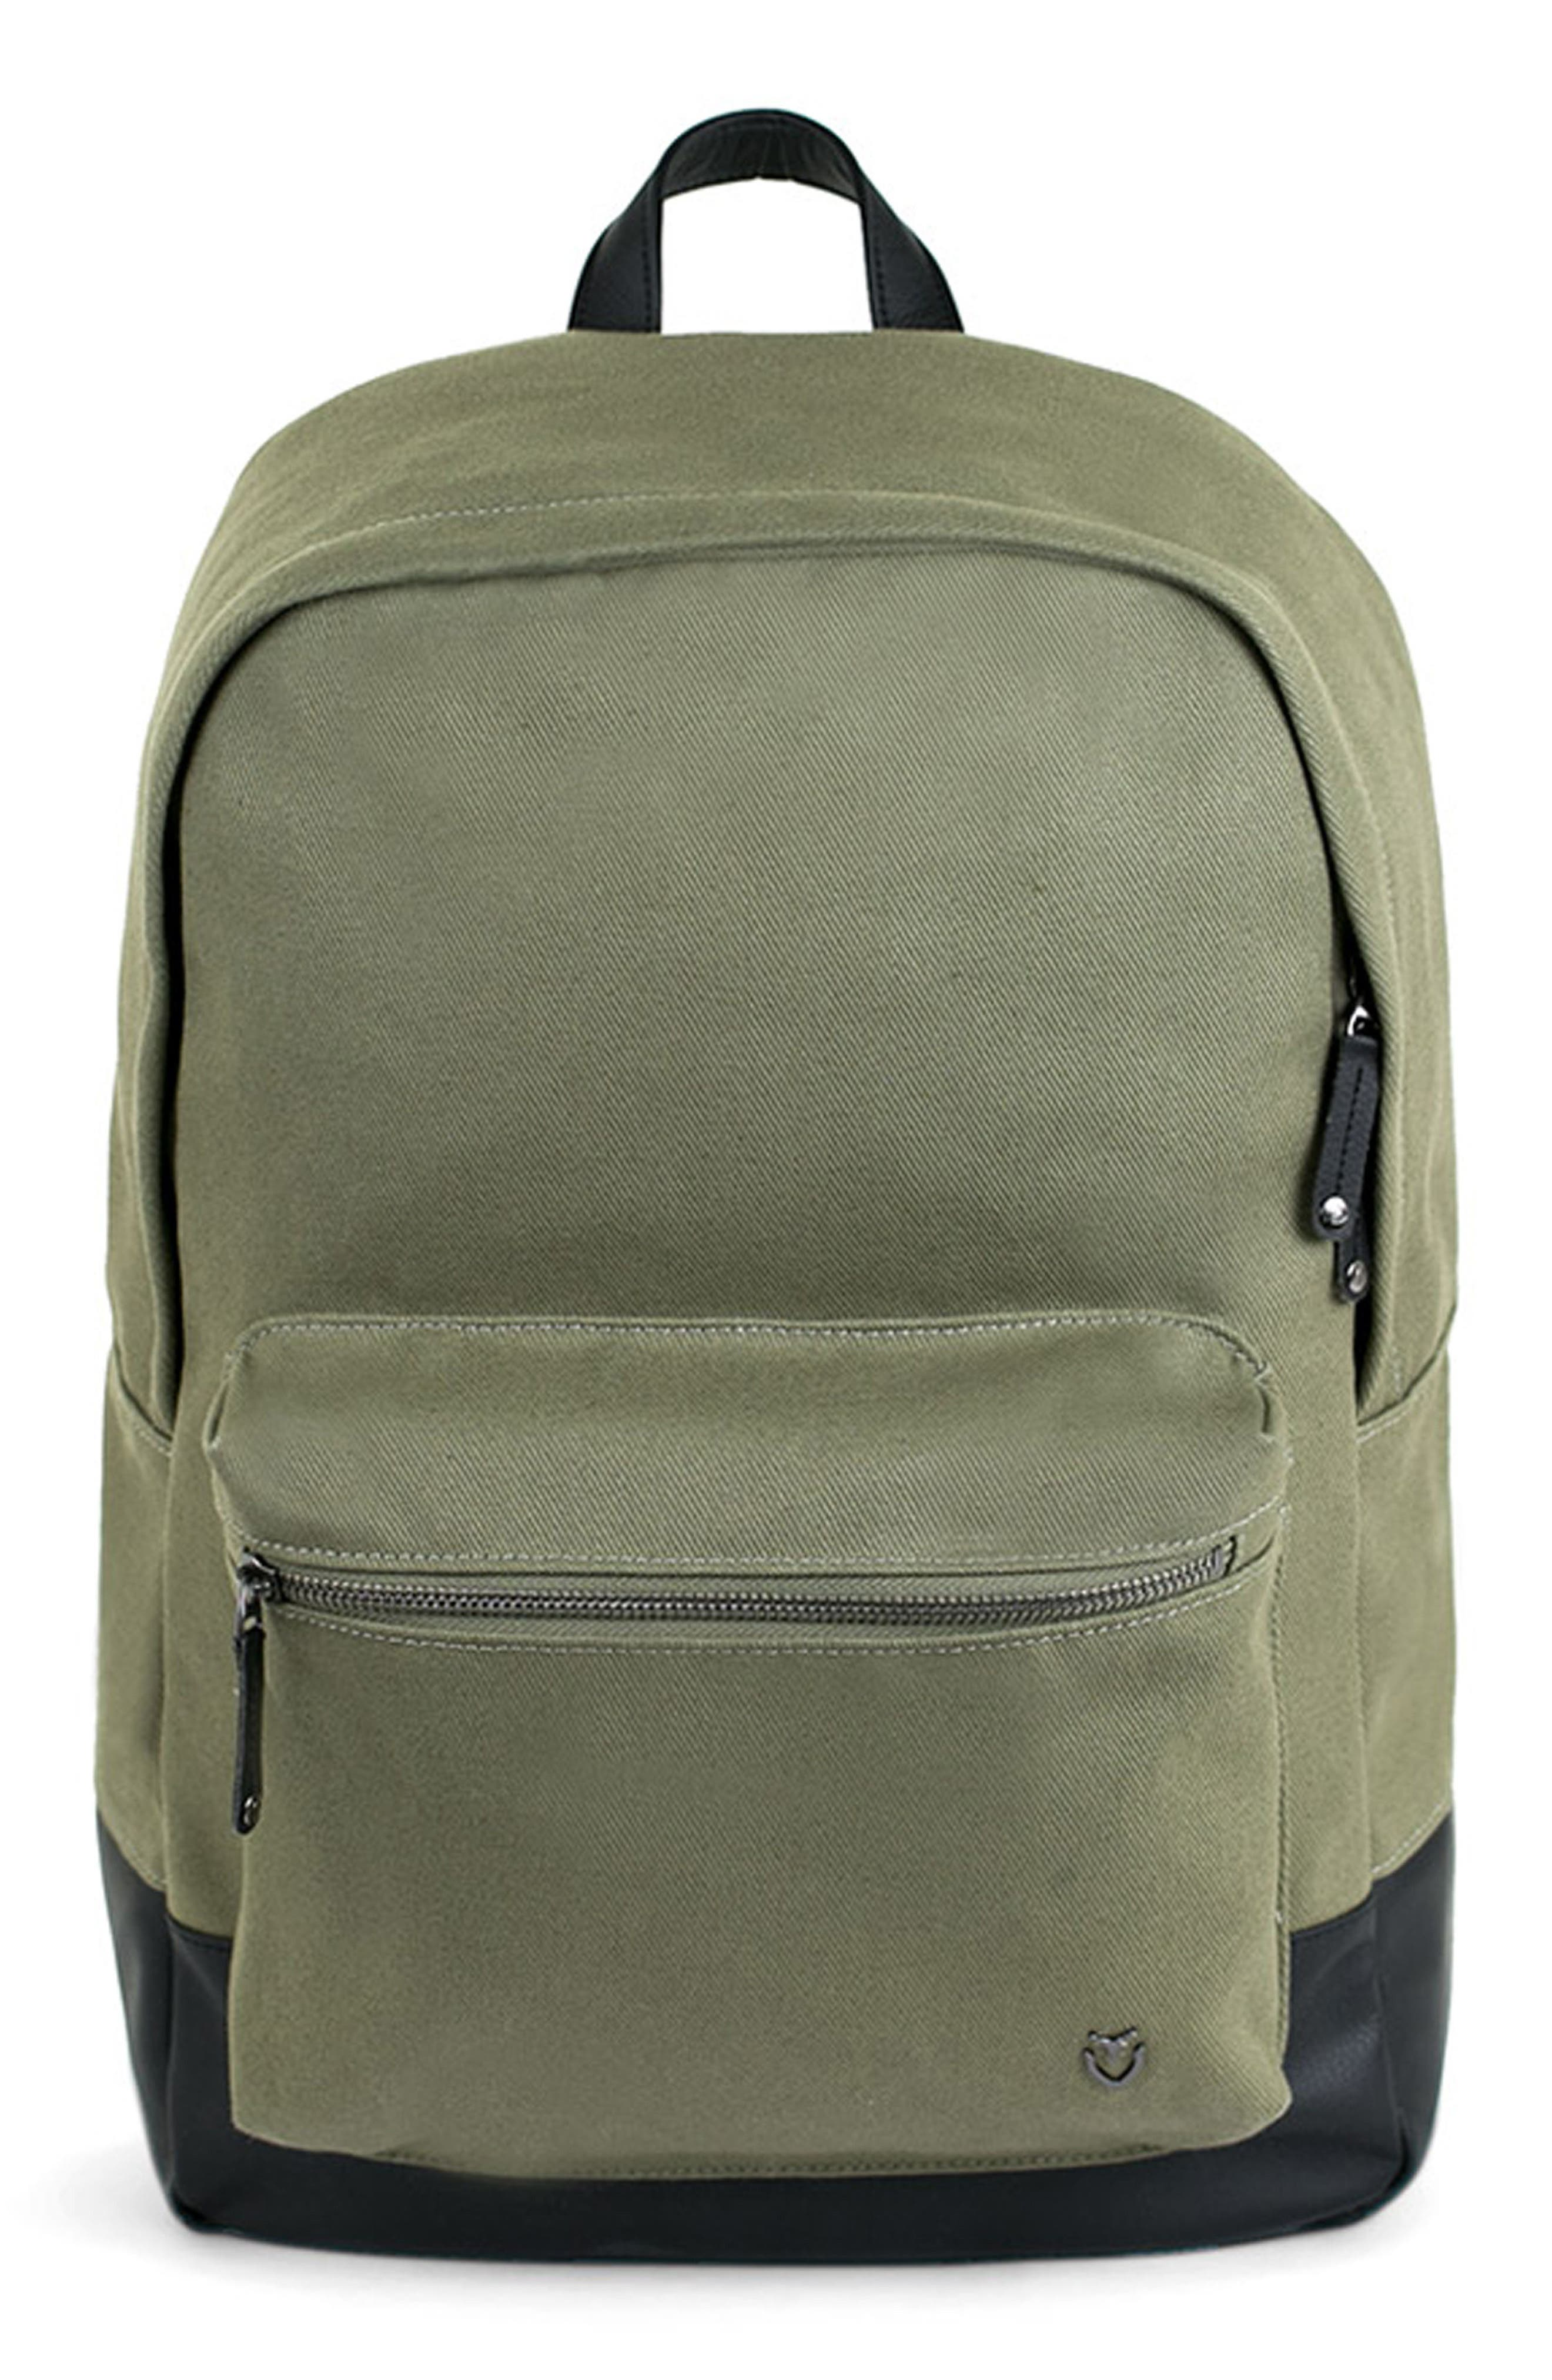 Vessel Refined Backpack - Green